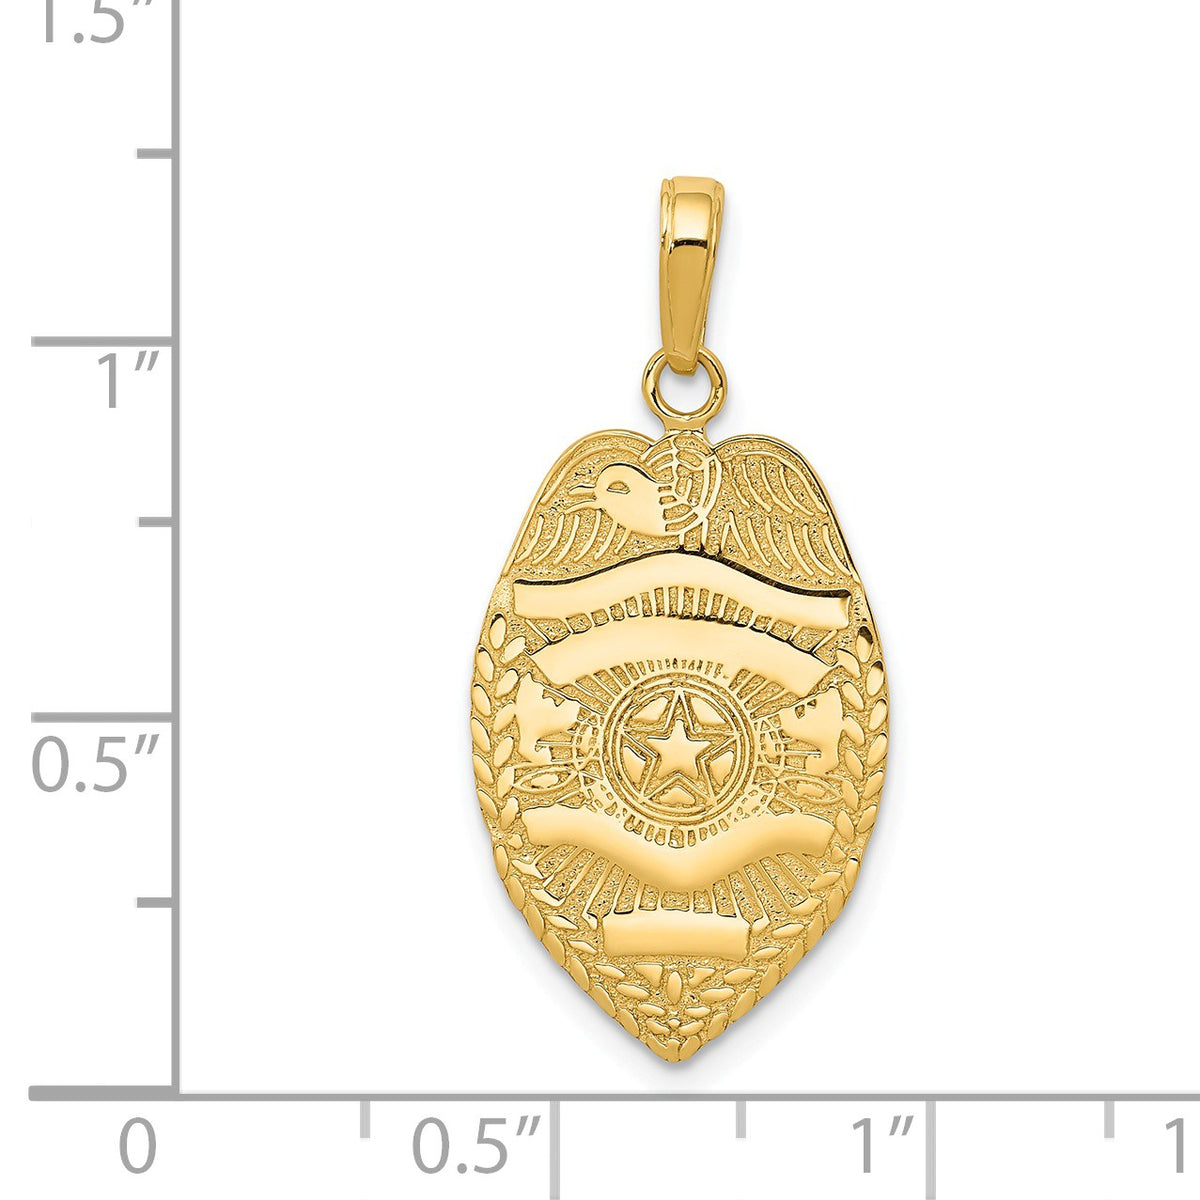 Alternate view of the 14k Yellow Gold Polished Badge Pendant by The Black Bow Jewelry Co.